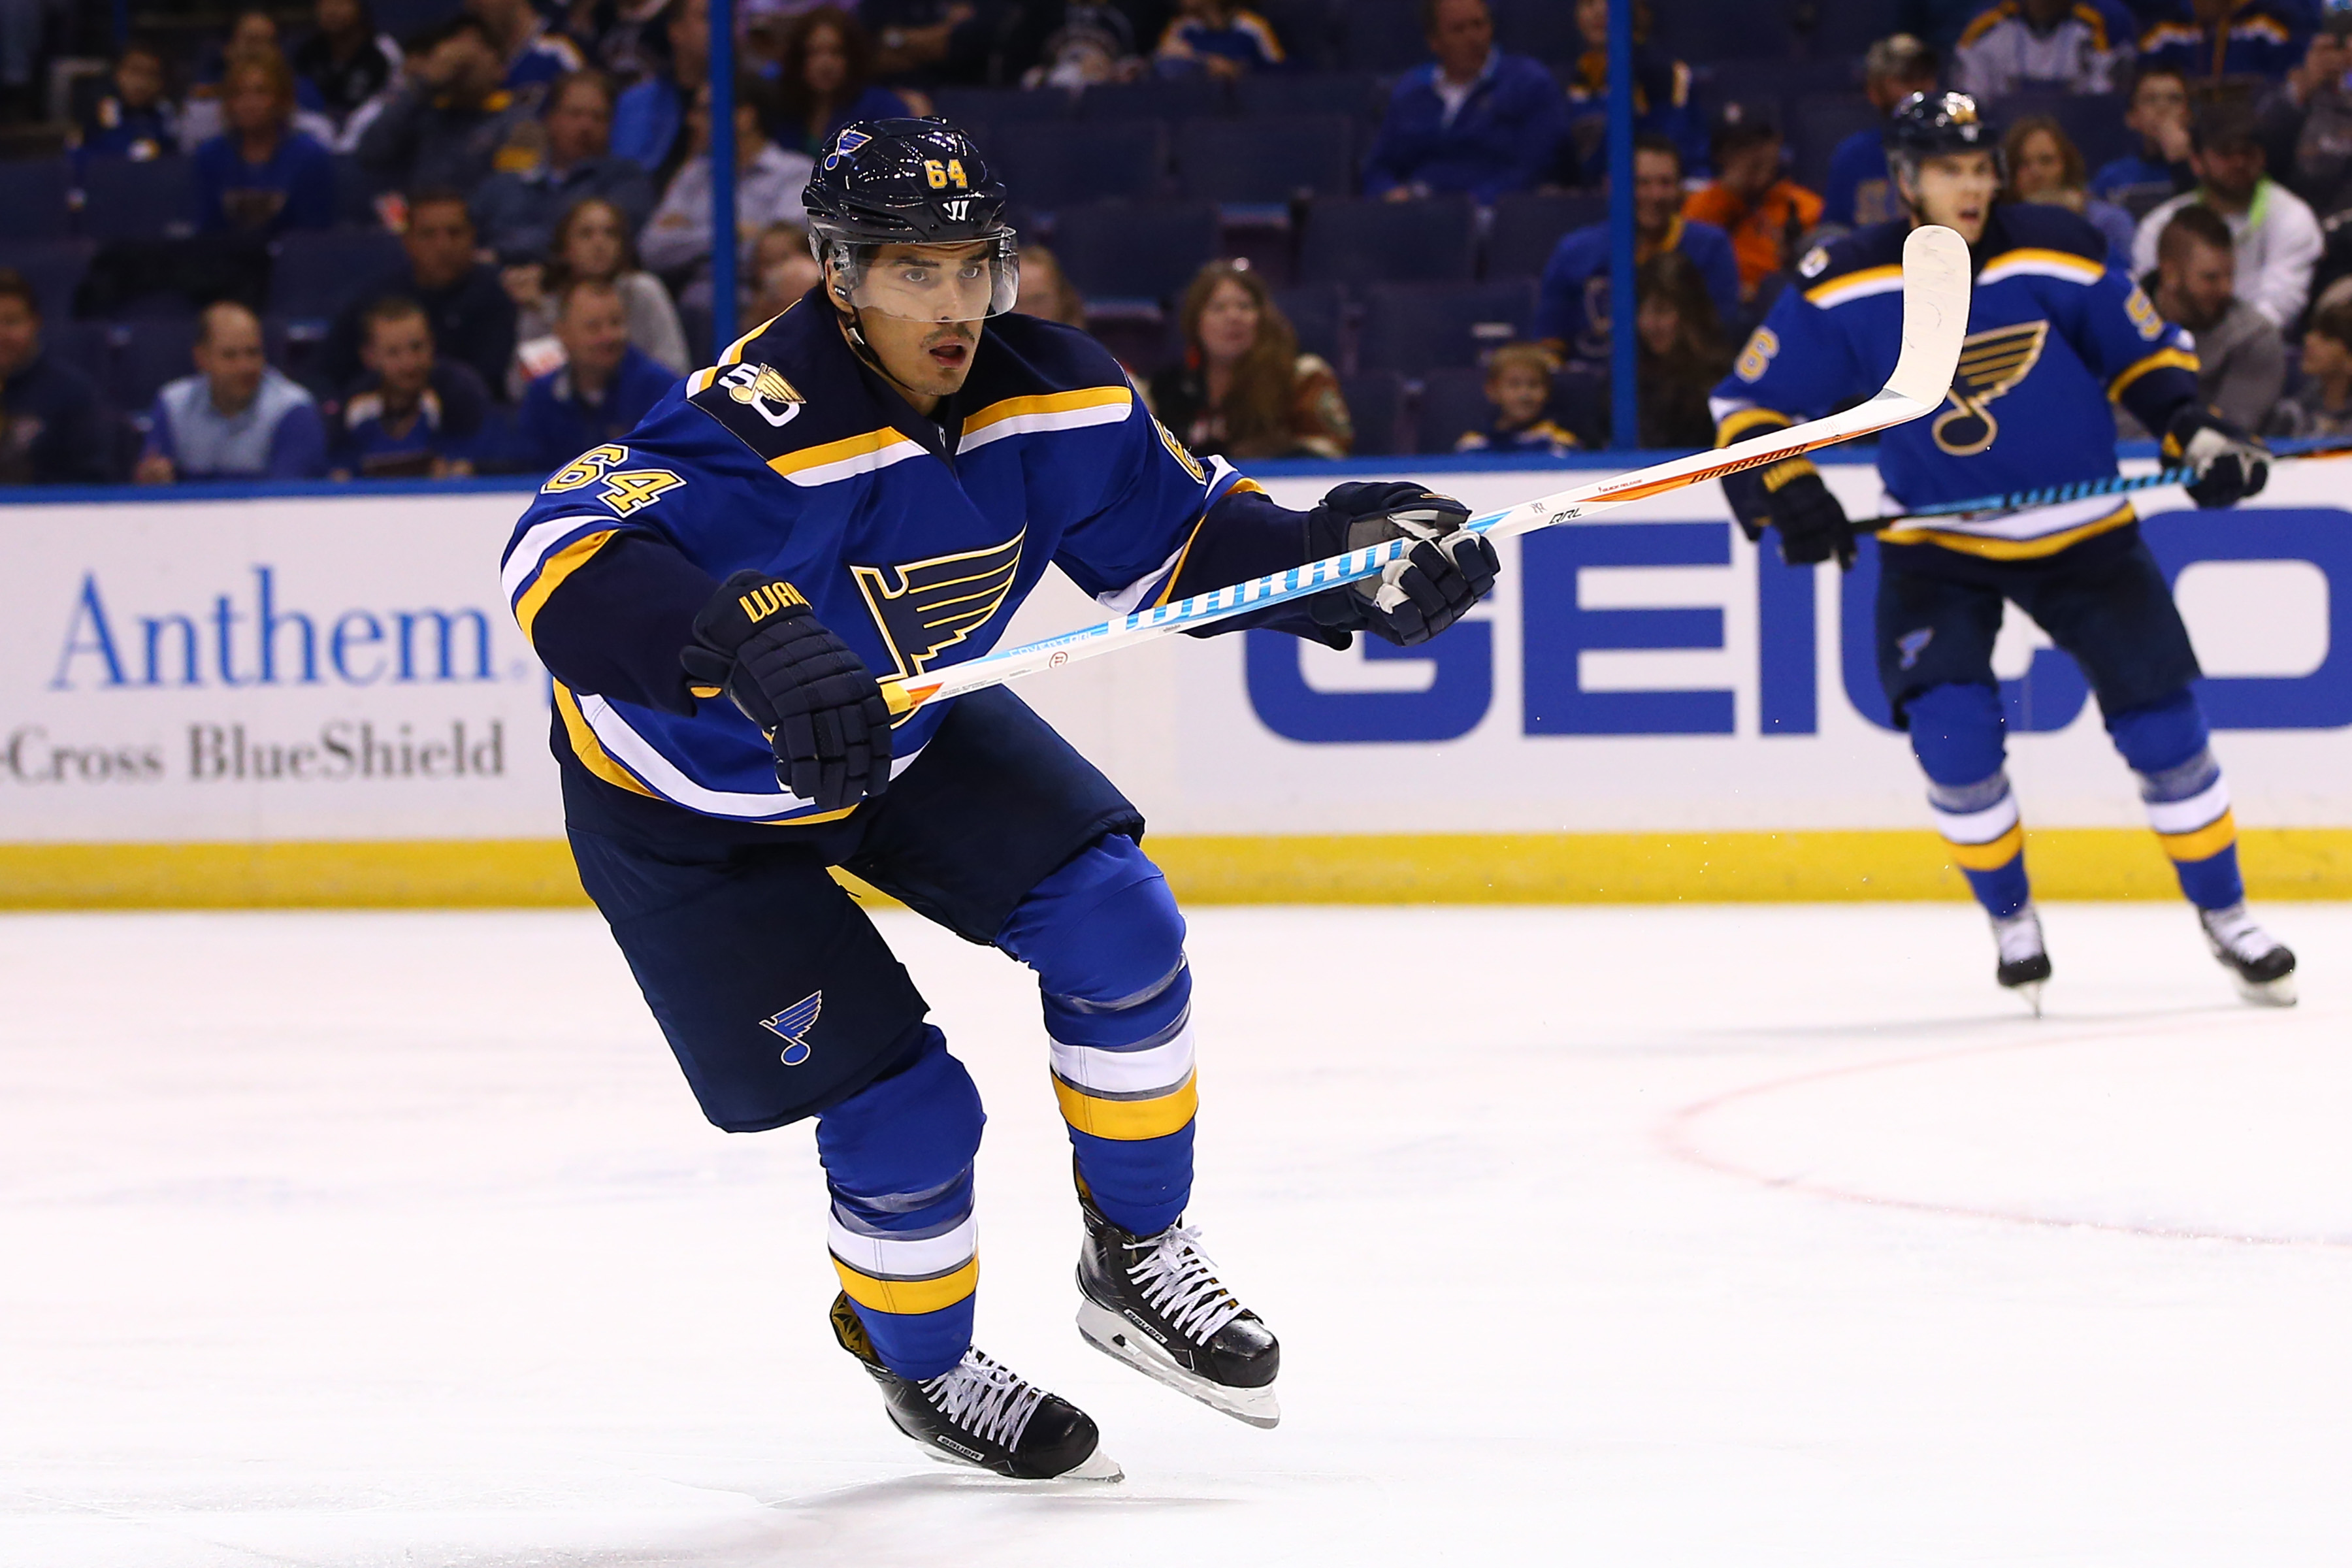 9635243-nhl-minnesota-wild-at-st.-louis-blues